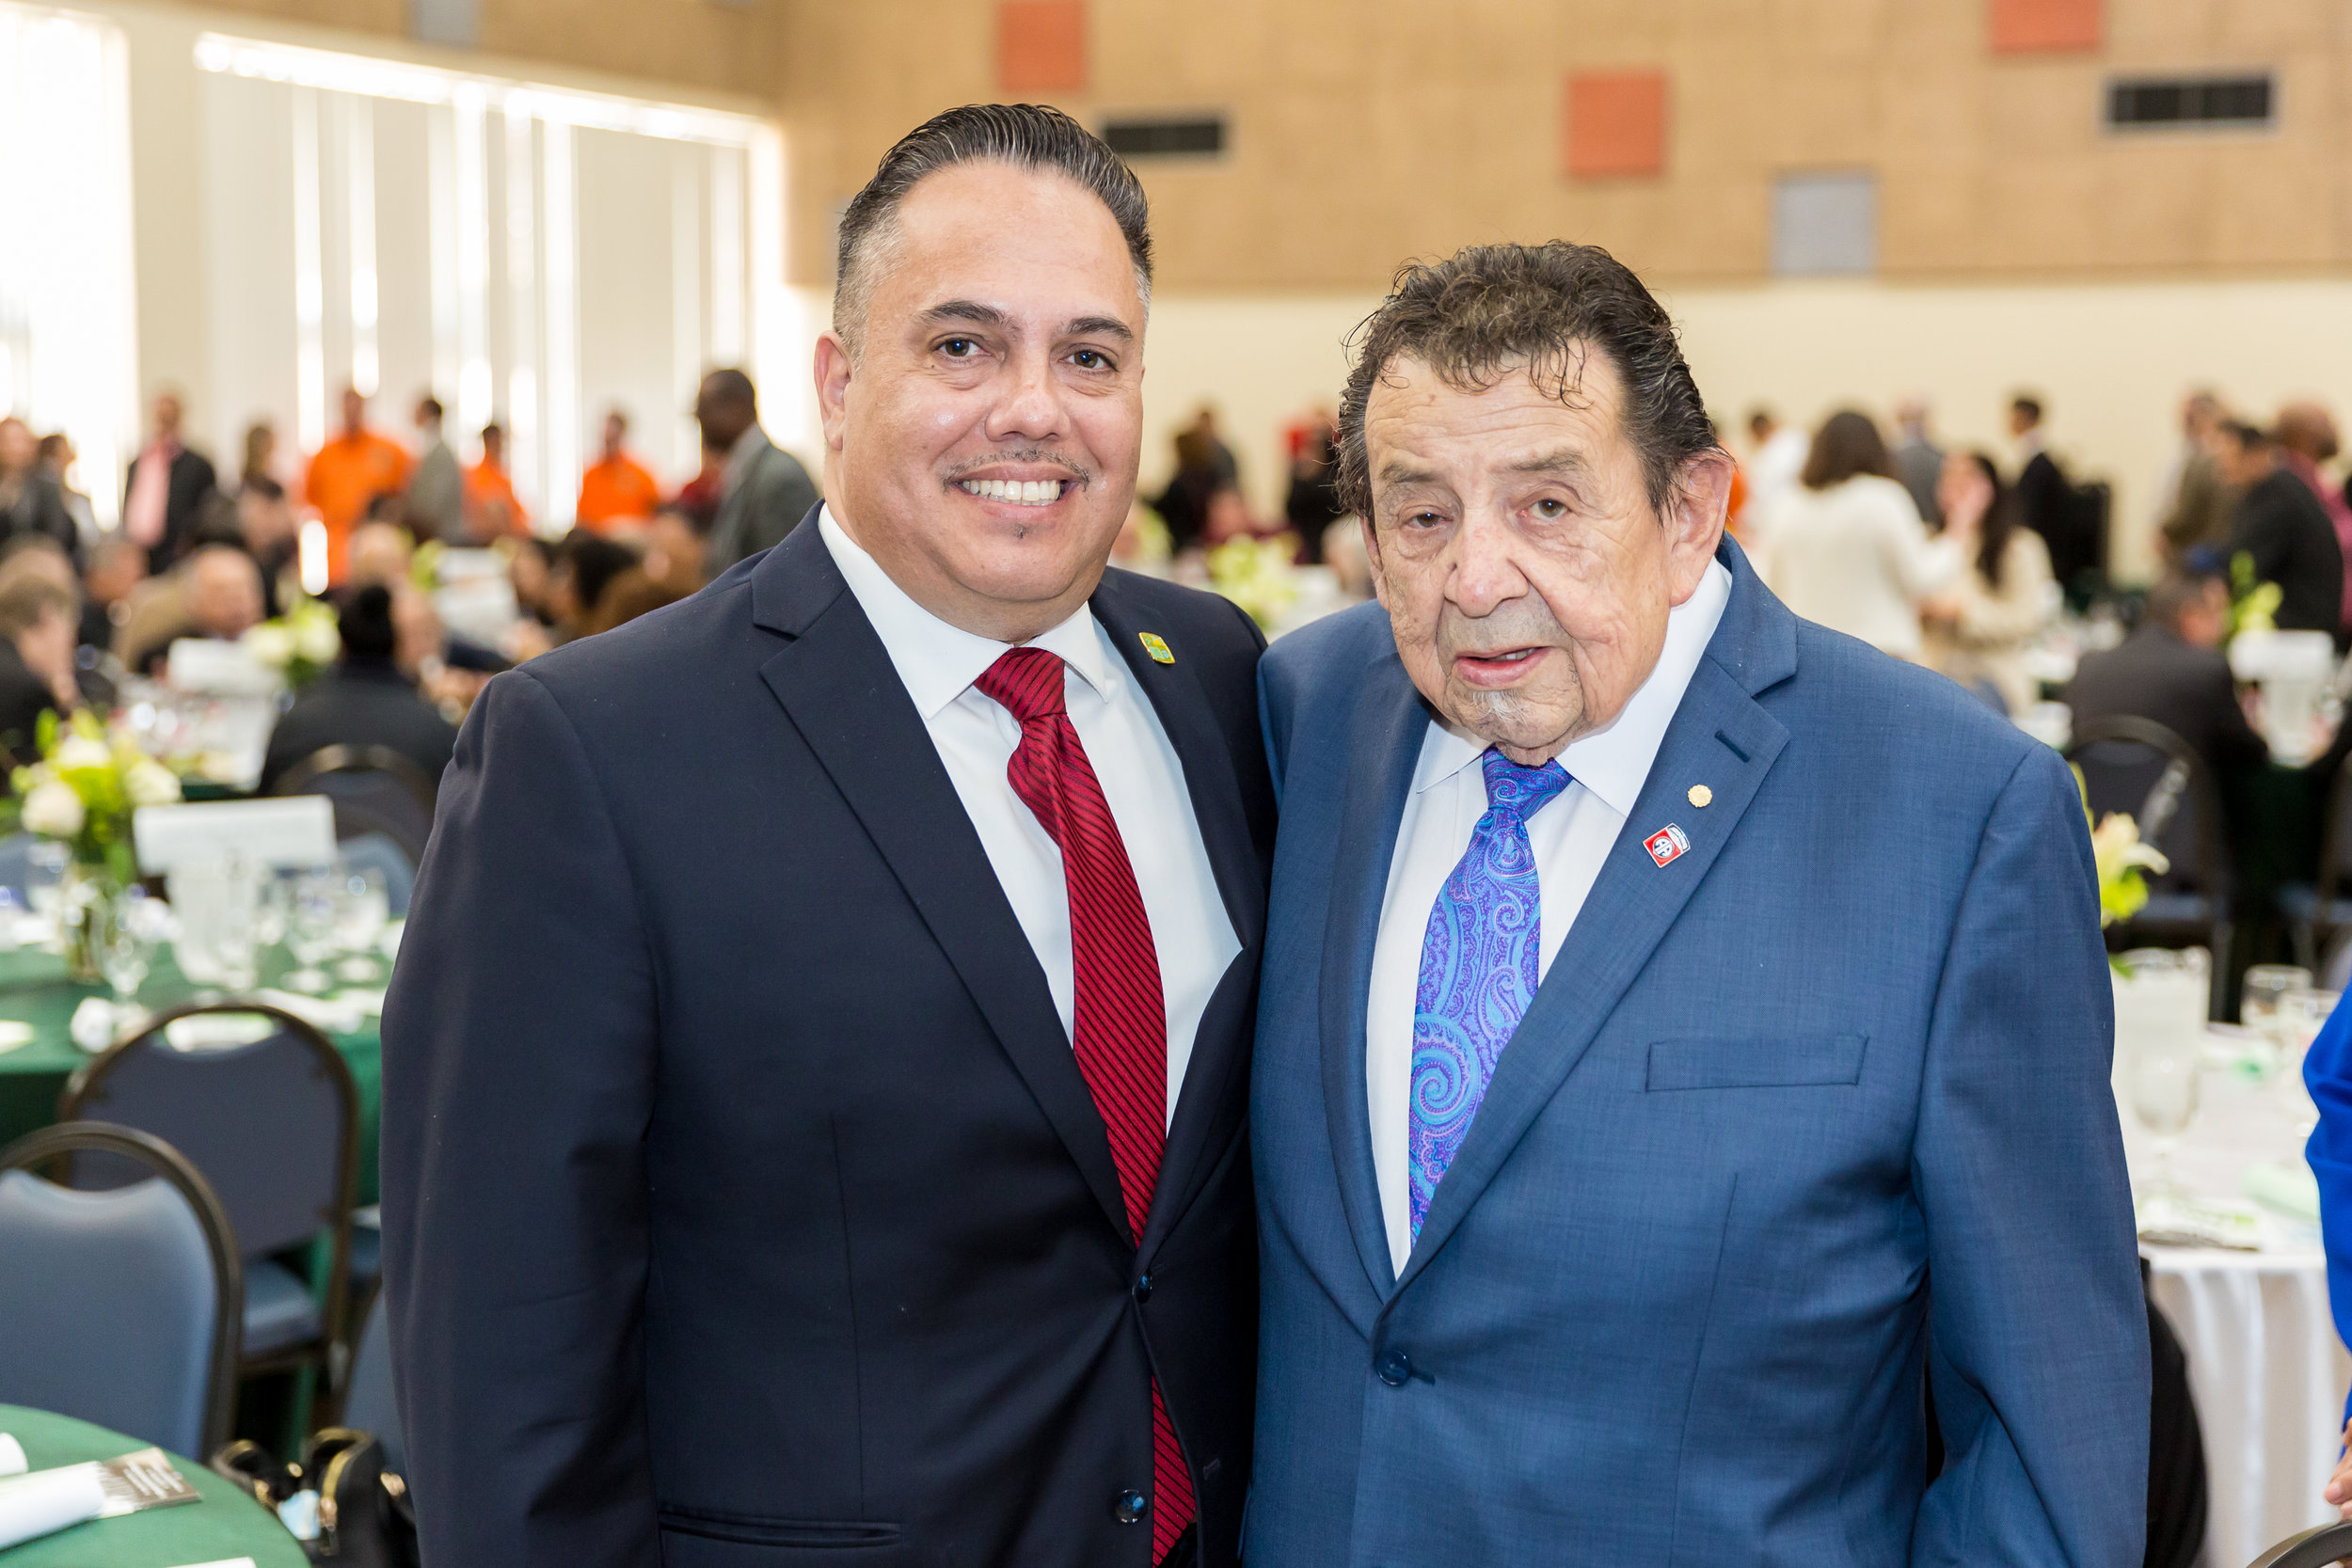 Mayor Vargas and Guest